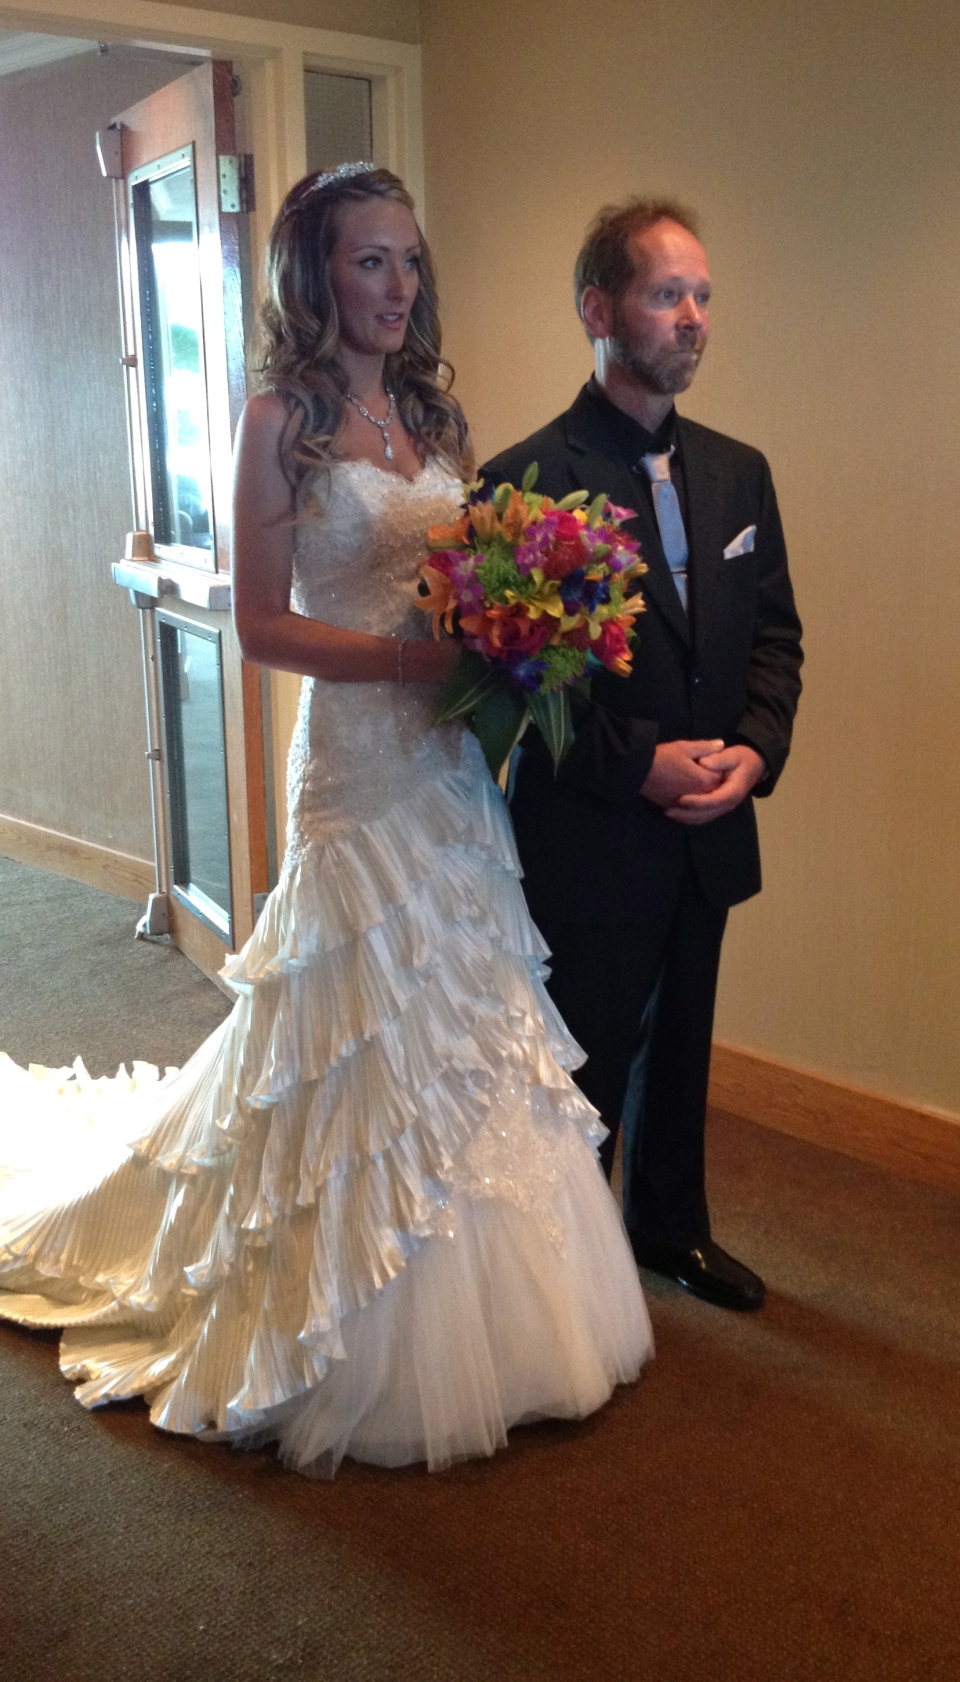 The beautiful bride with her colourful bouquet